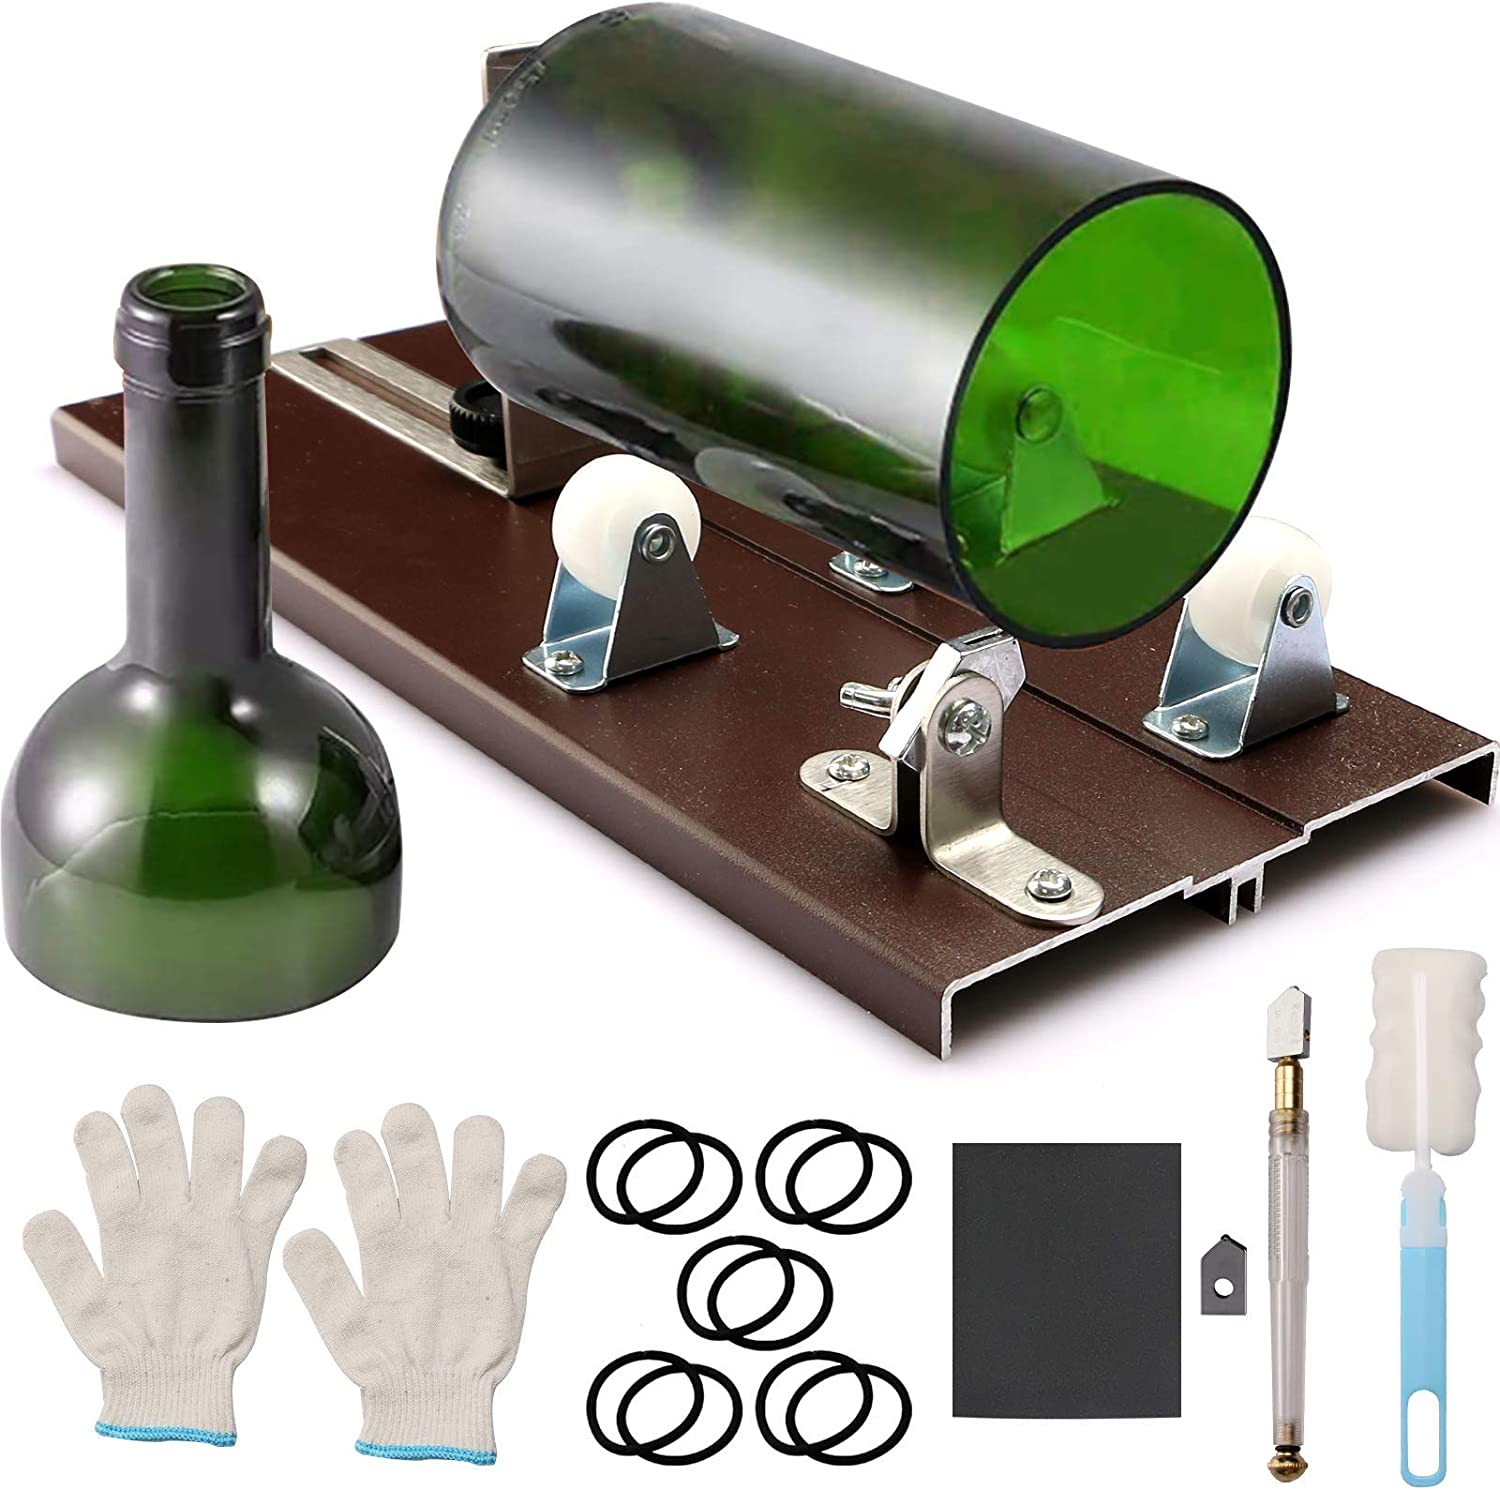 Glass Manufacturer OFFicial shop Bottle Cutter Kit Animer and price revision Cutting for Bottles